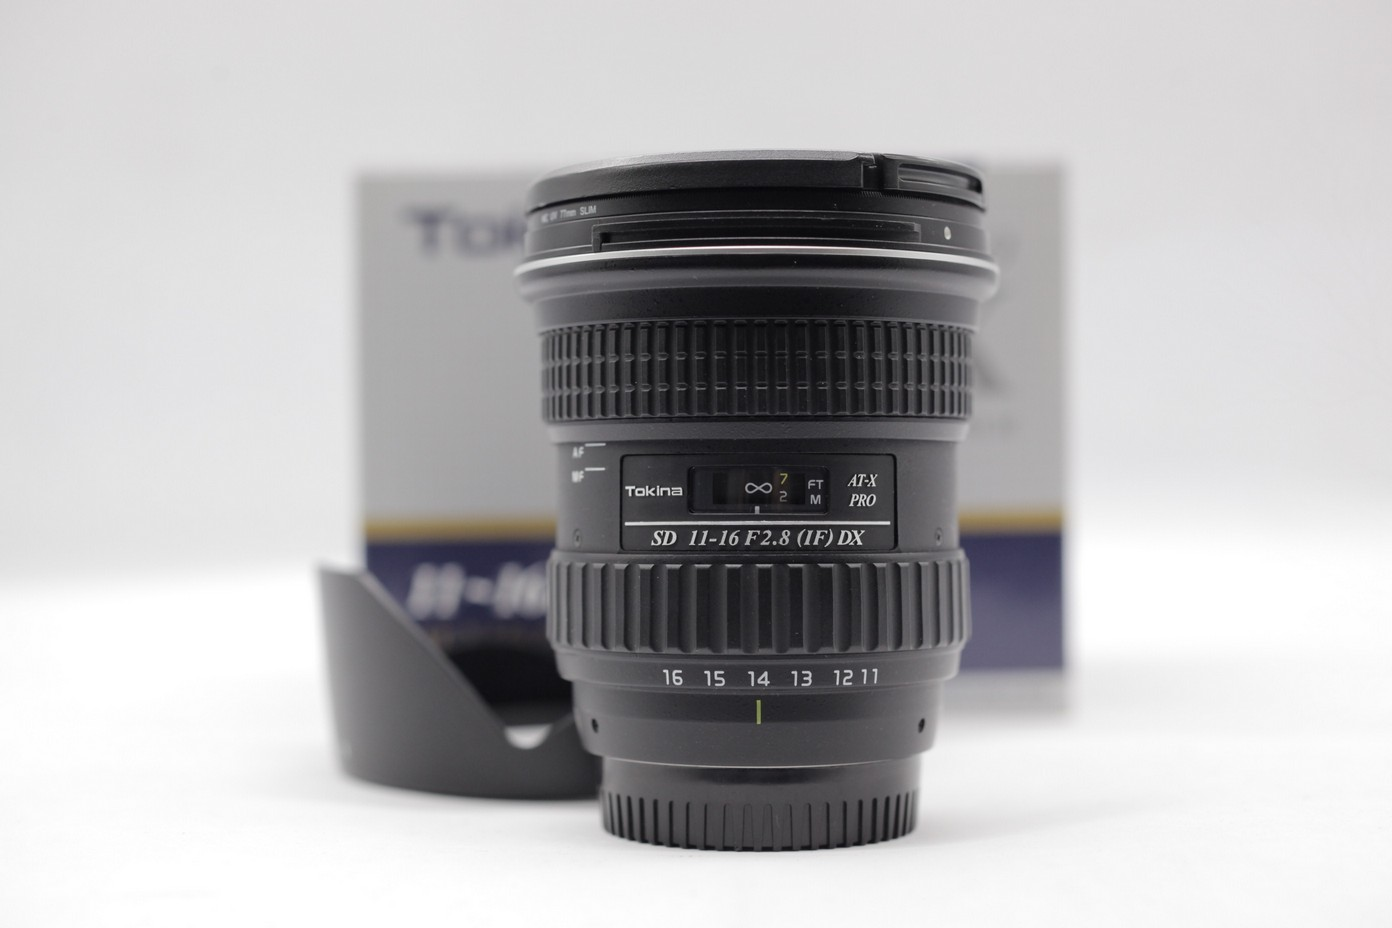 Used - Tokina 11-16MM F2.8 (IF) DX for Nikon